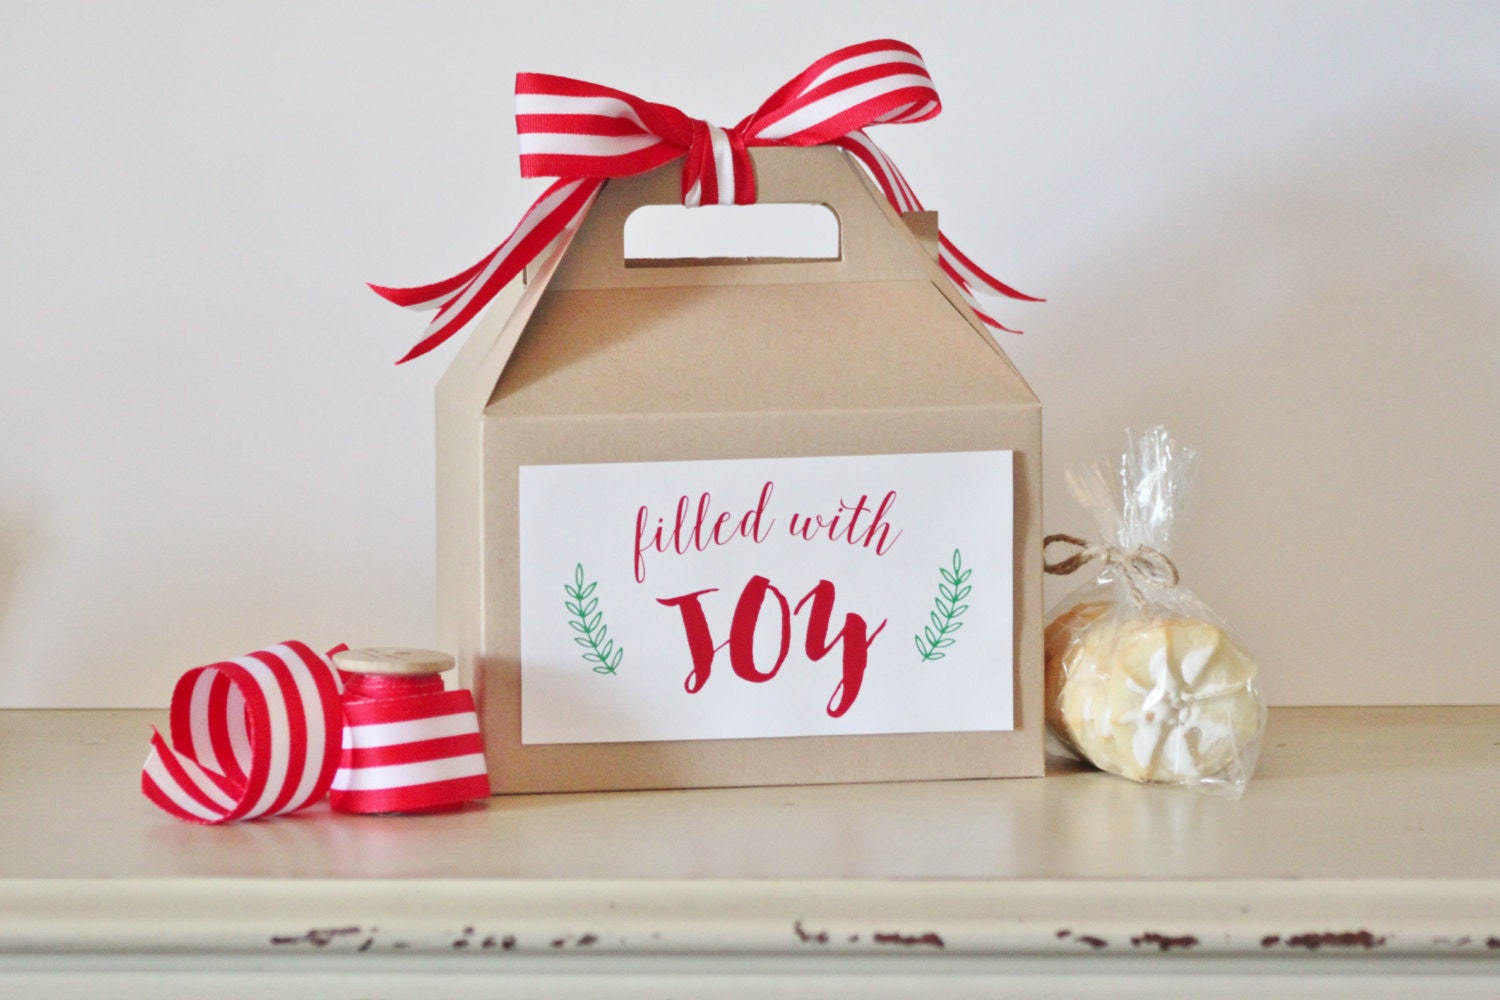 Set 10 kraft Gable boxes with Filled with JOY labels